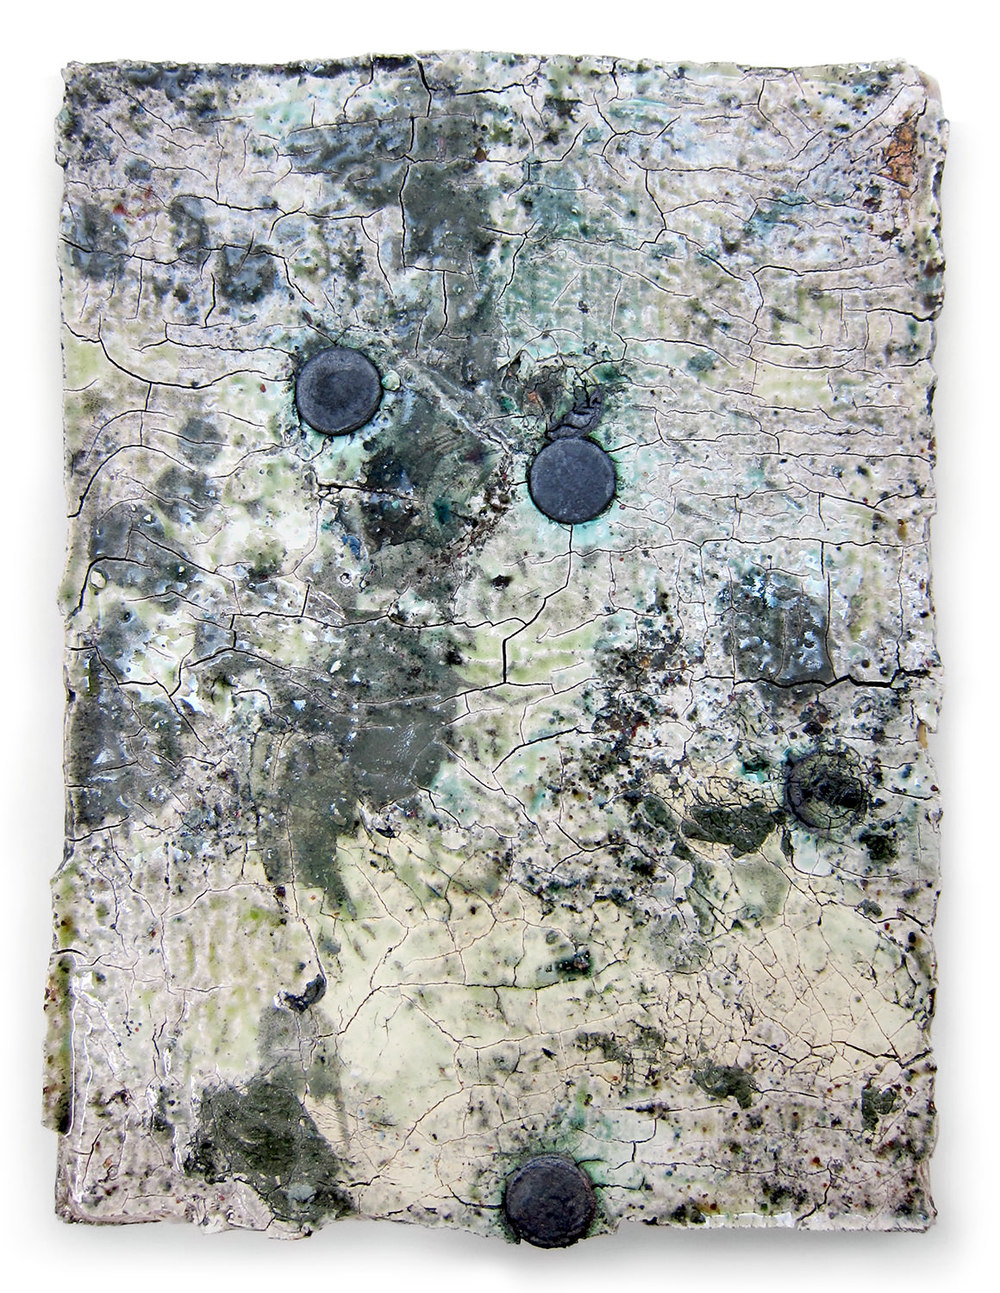 "<em>Reclaim Slab No.8</em> <span style=""color:#CC0000;font-size:1.5em;"">•</span>"